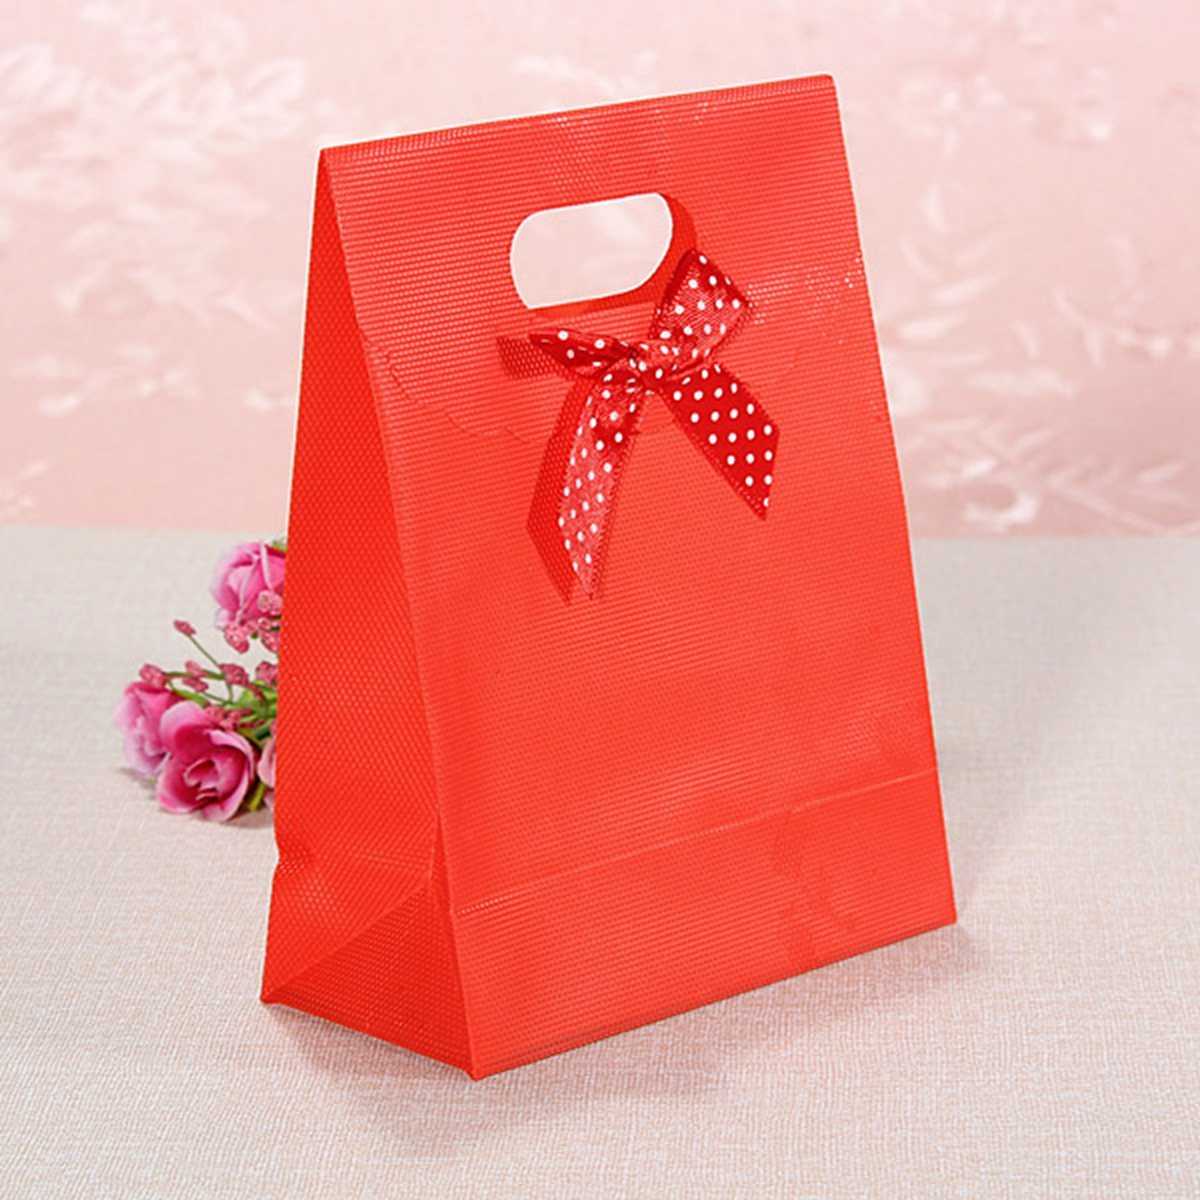 New Large Small Bowknot Beauty Flip Plastic Present Wedding Party Gift Hand Bags Ebay